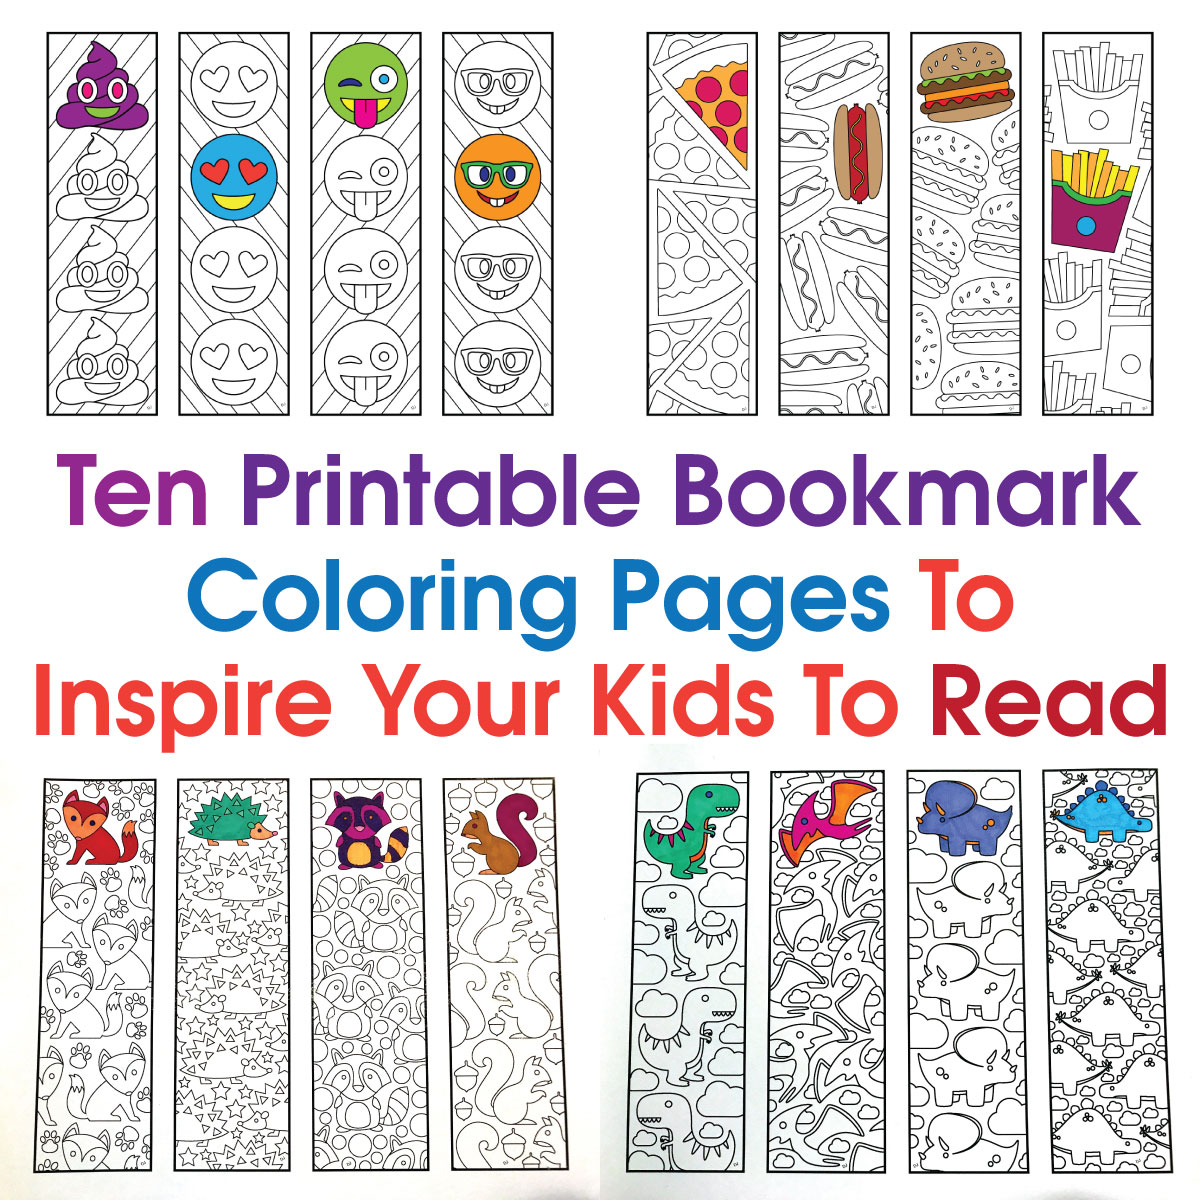 Ten Printable Bookmark Coloring Pages To Inspire Your Kids To Read Scribble Stitch